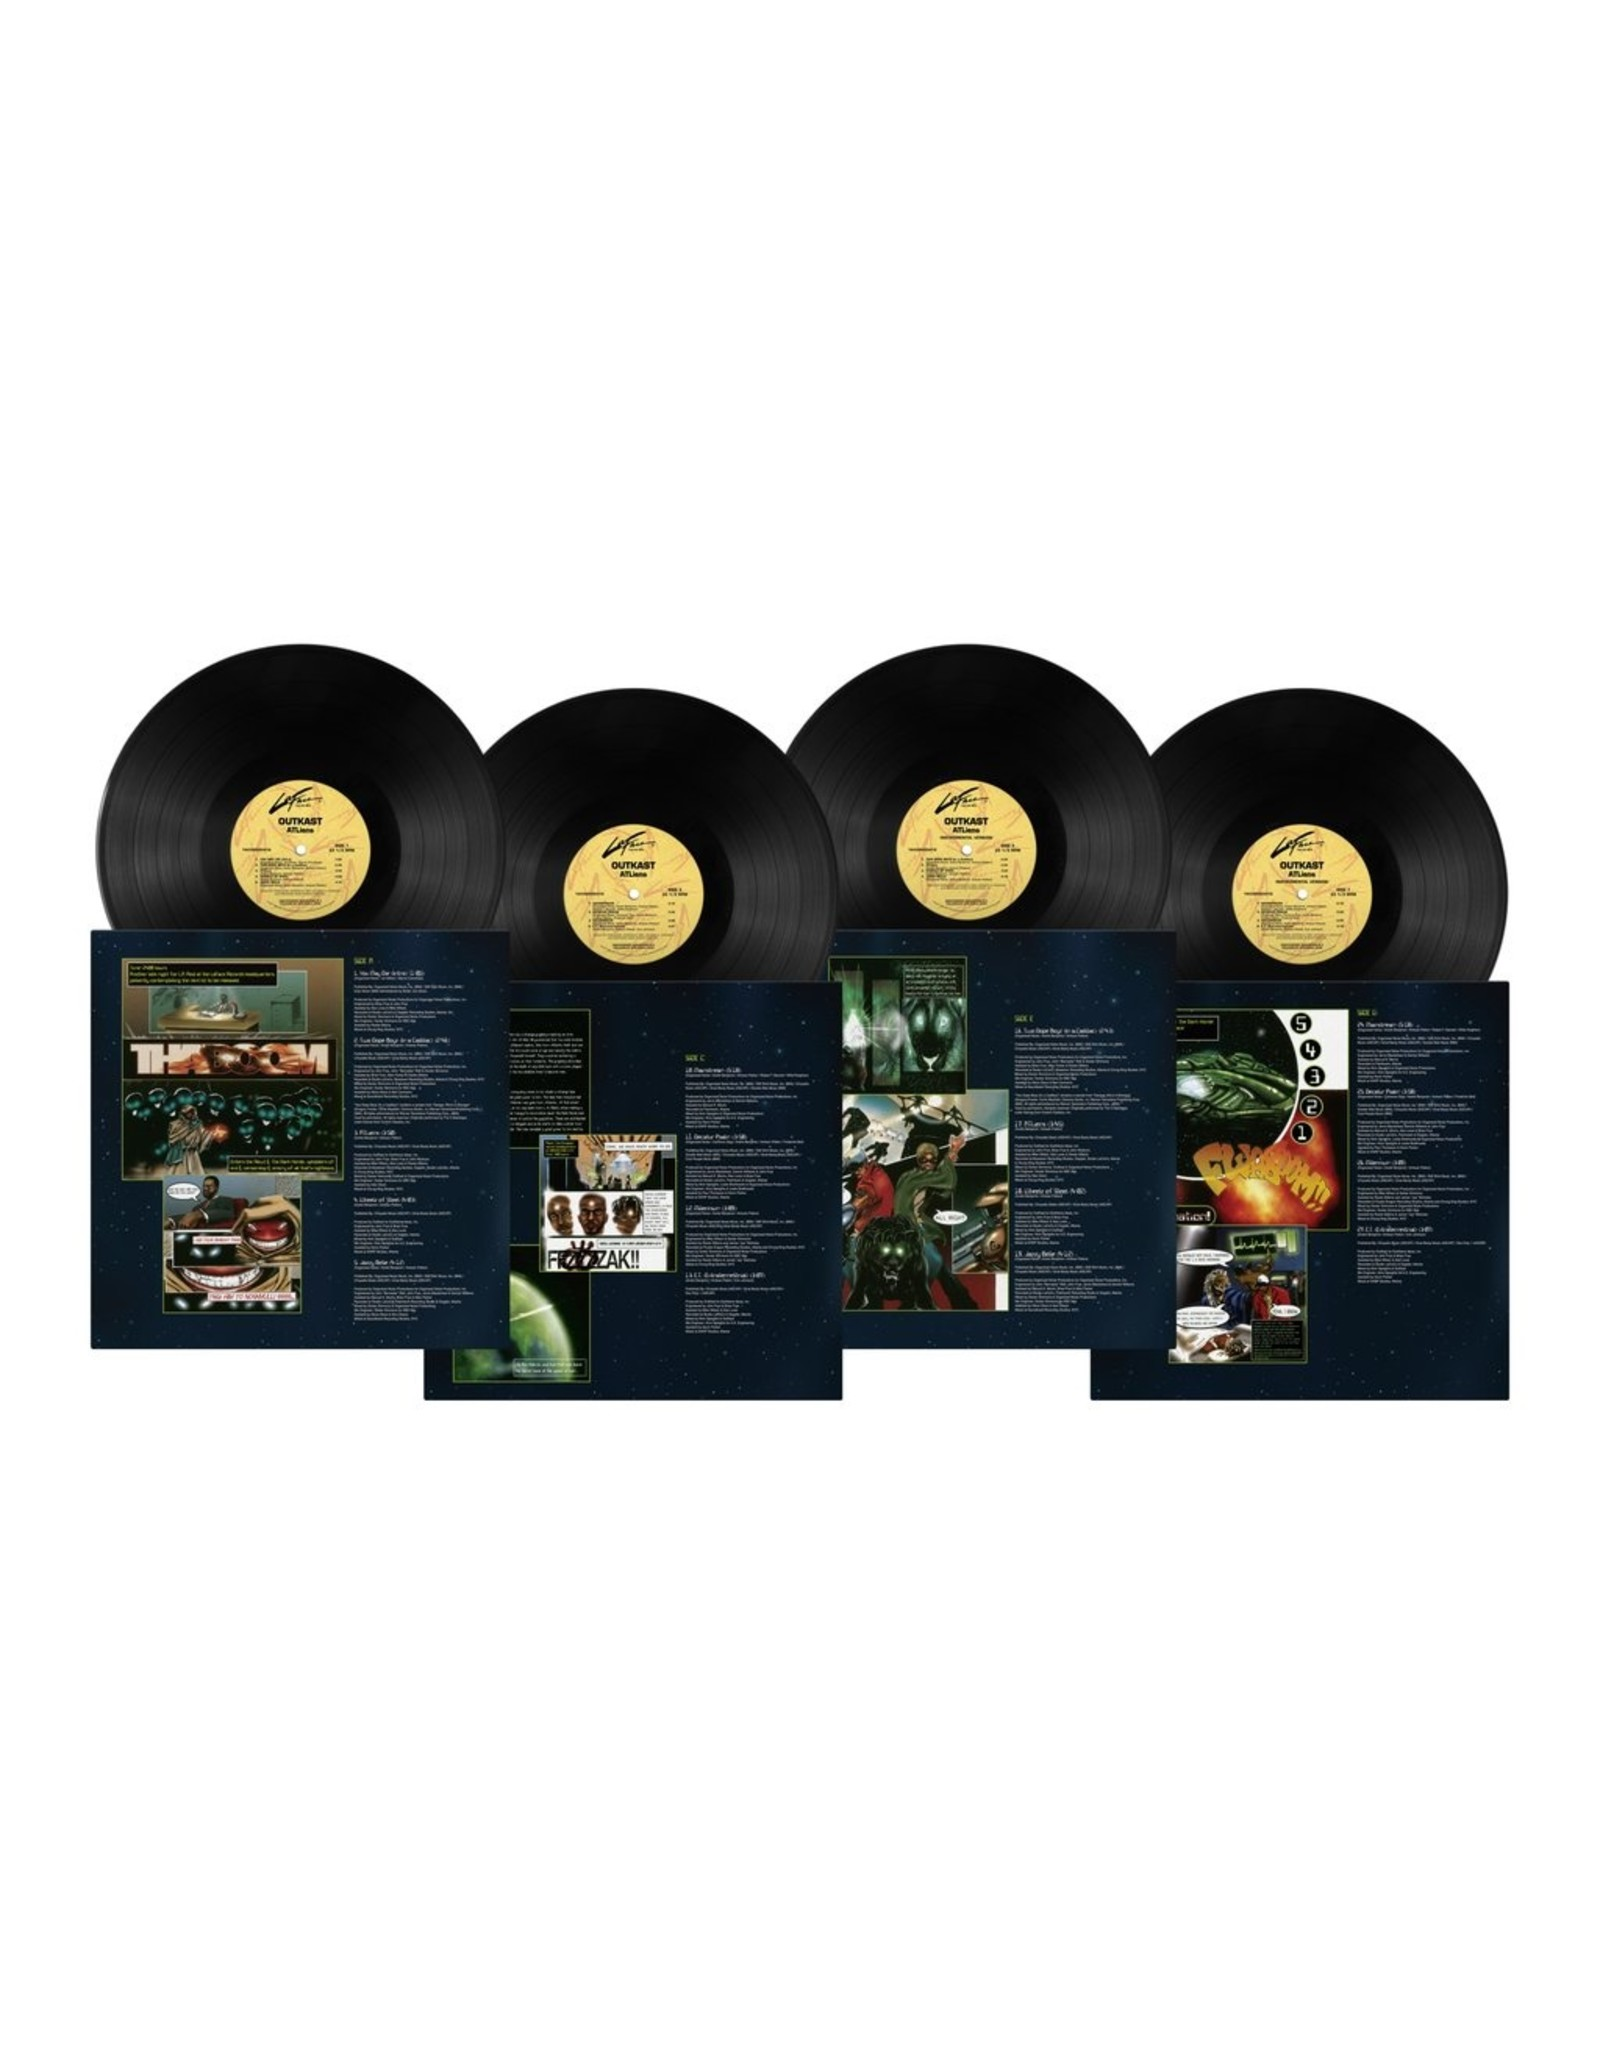 OutKast - ATLiens (25th Anniversary) [Expanded 4LP Edition]